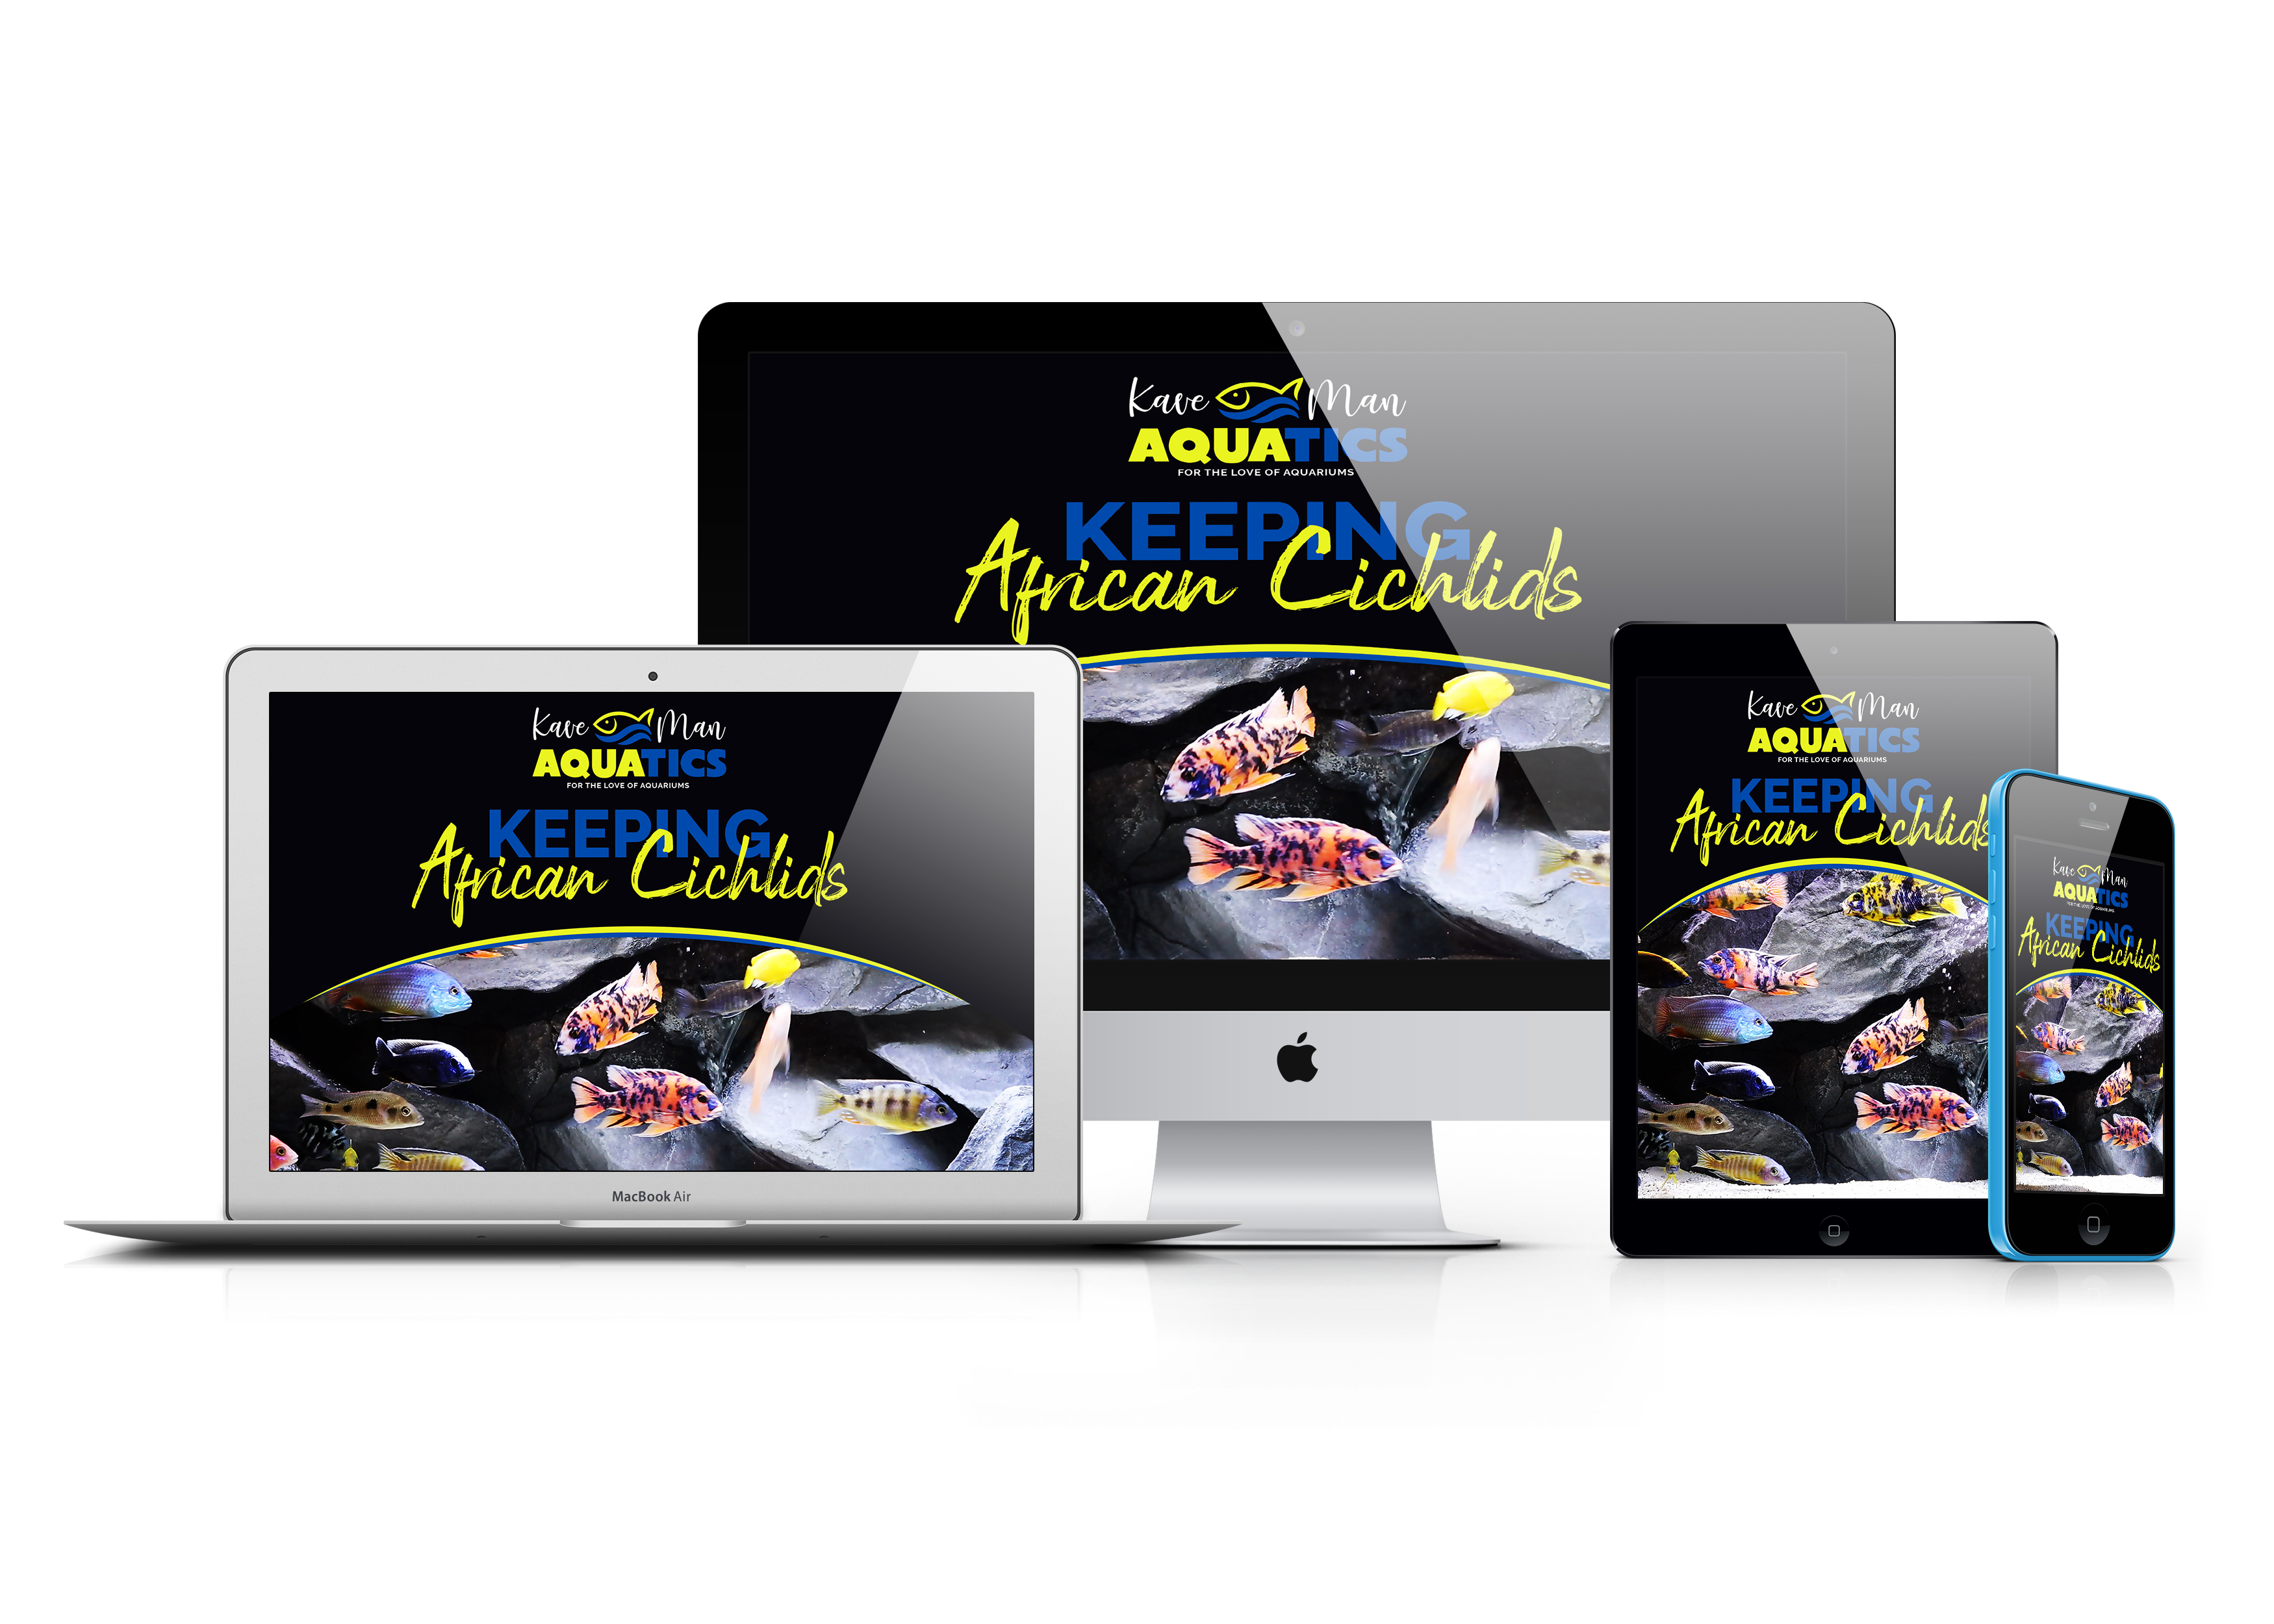 Keeping African Cichlids Online Course